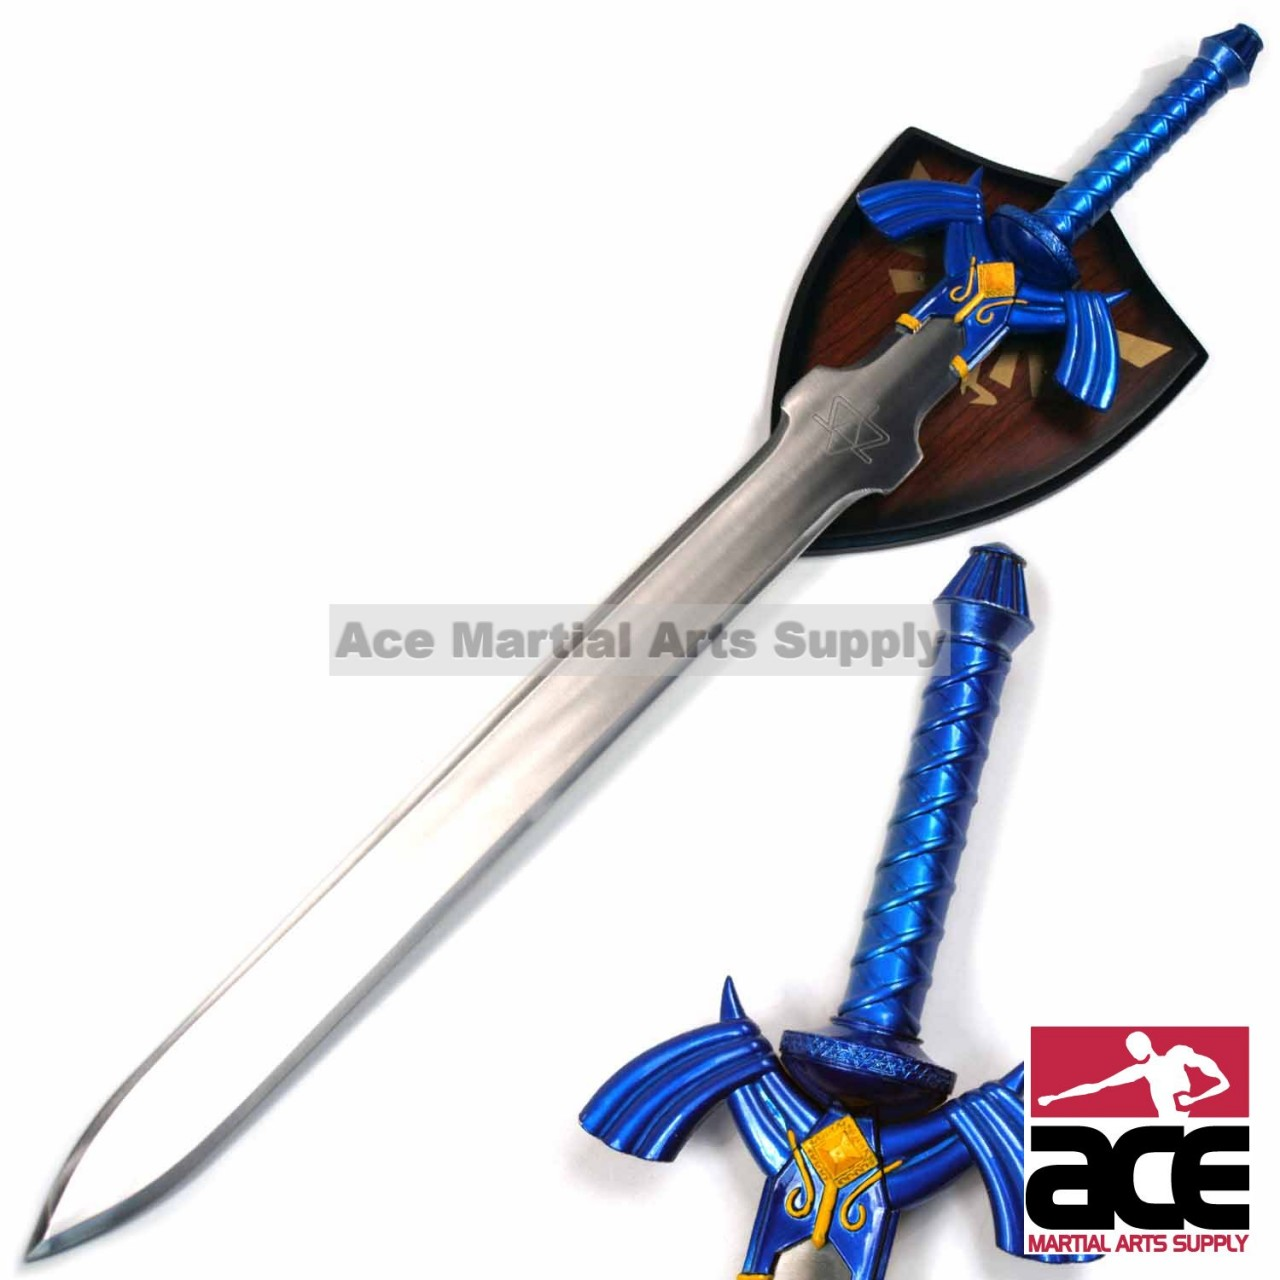 On Base Of The Handle Where It Meets Sword There Is Well Known Intricate Golden Design To Remind You Its Fantasy Origin